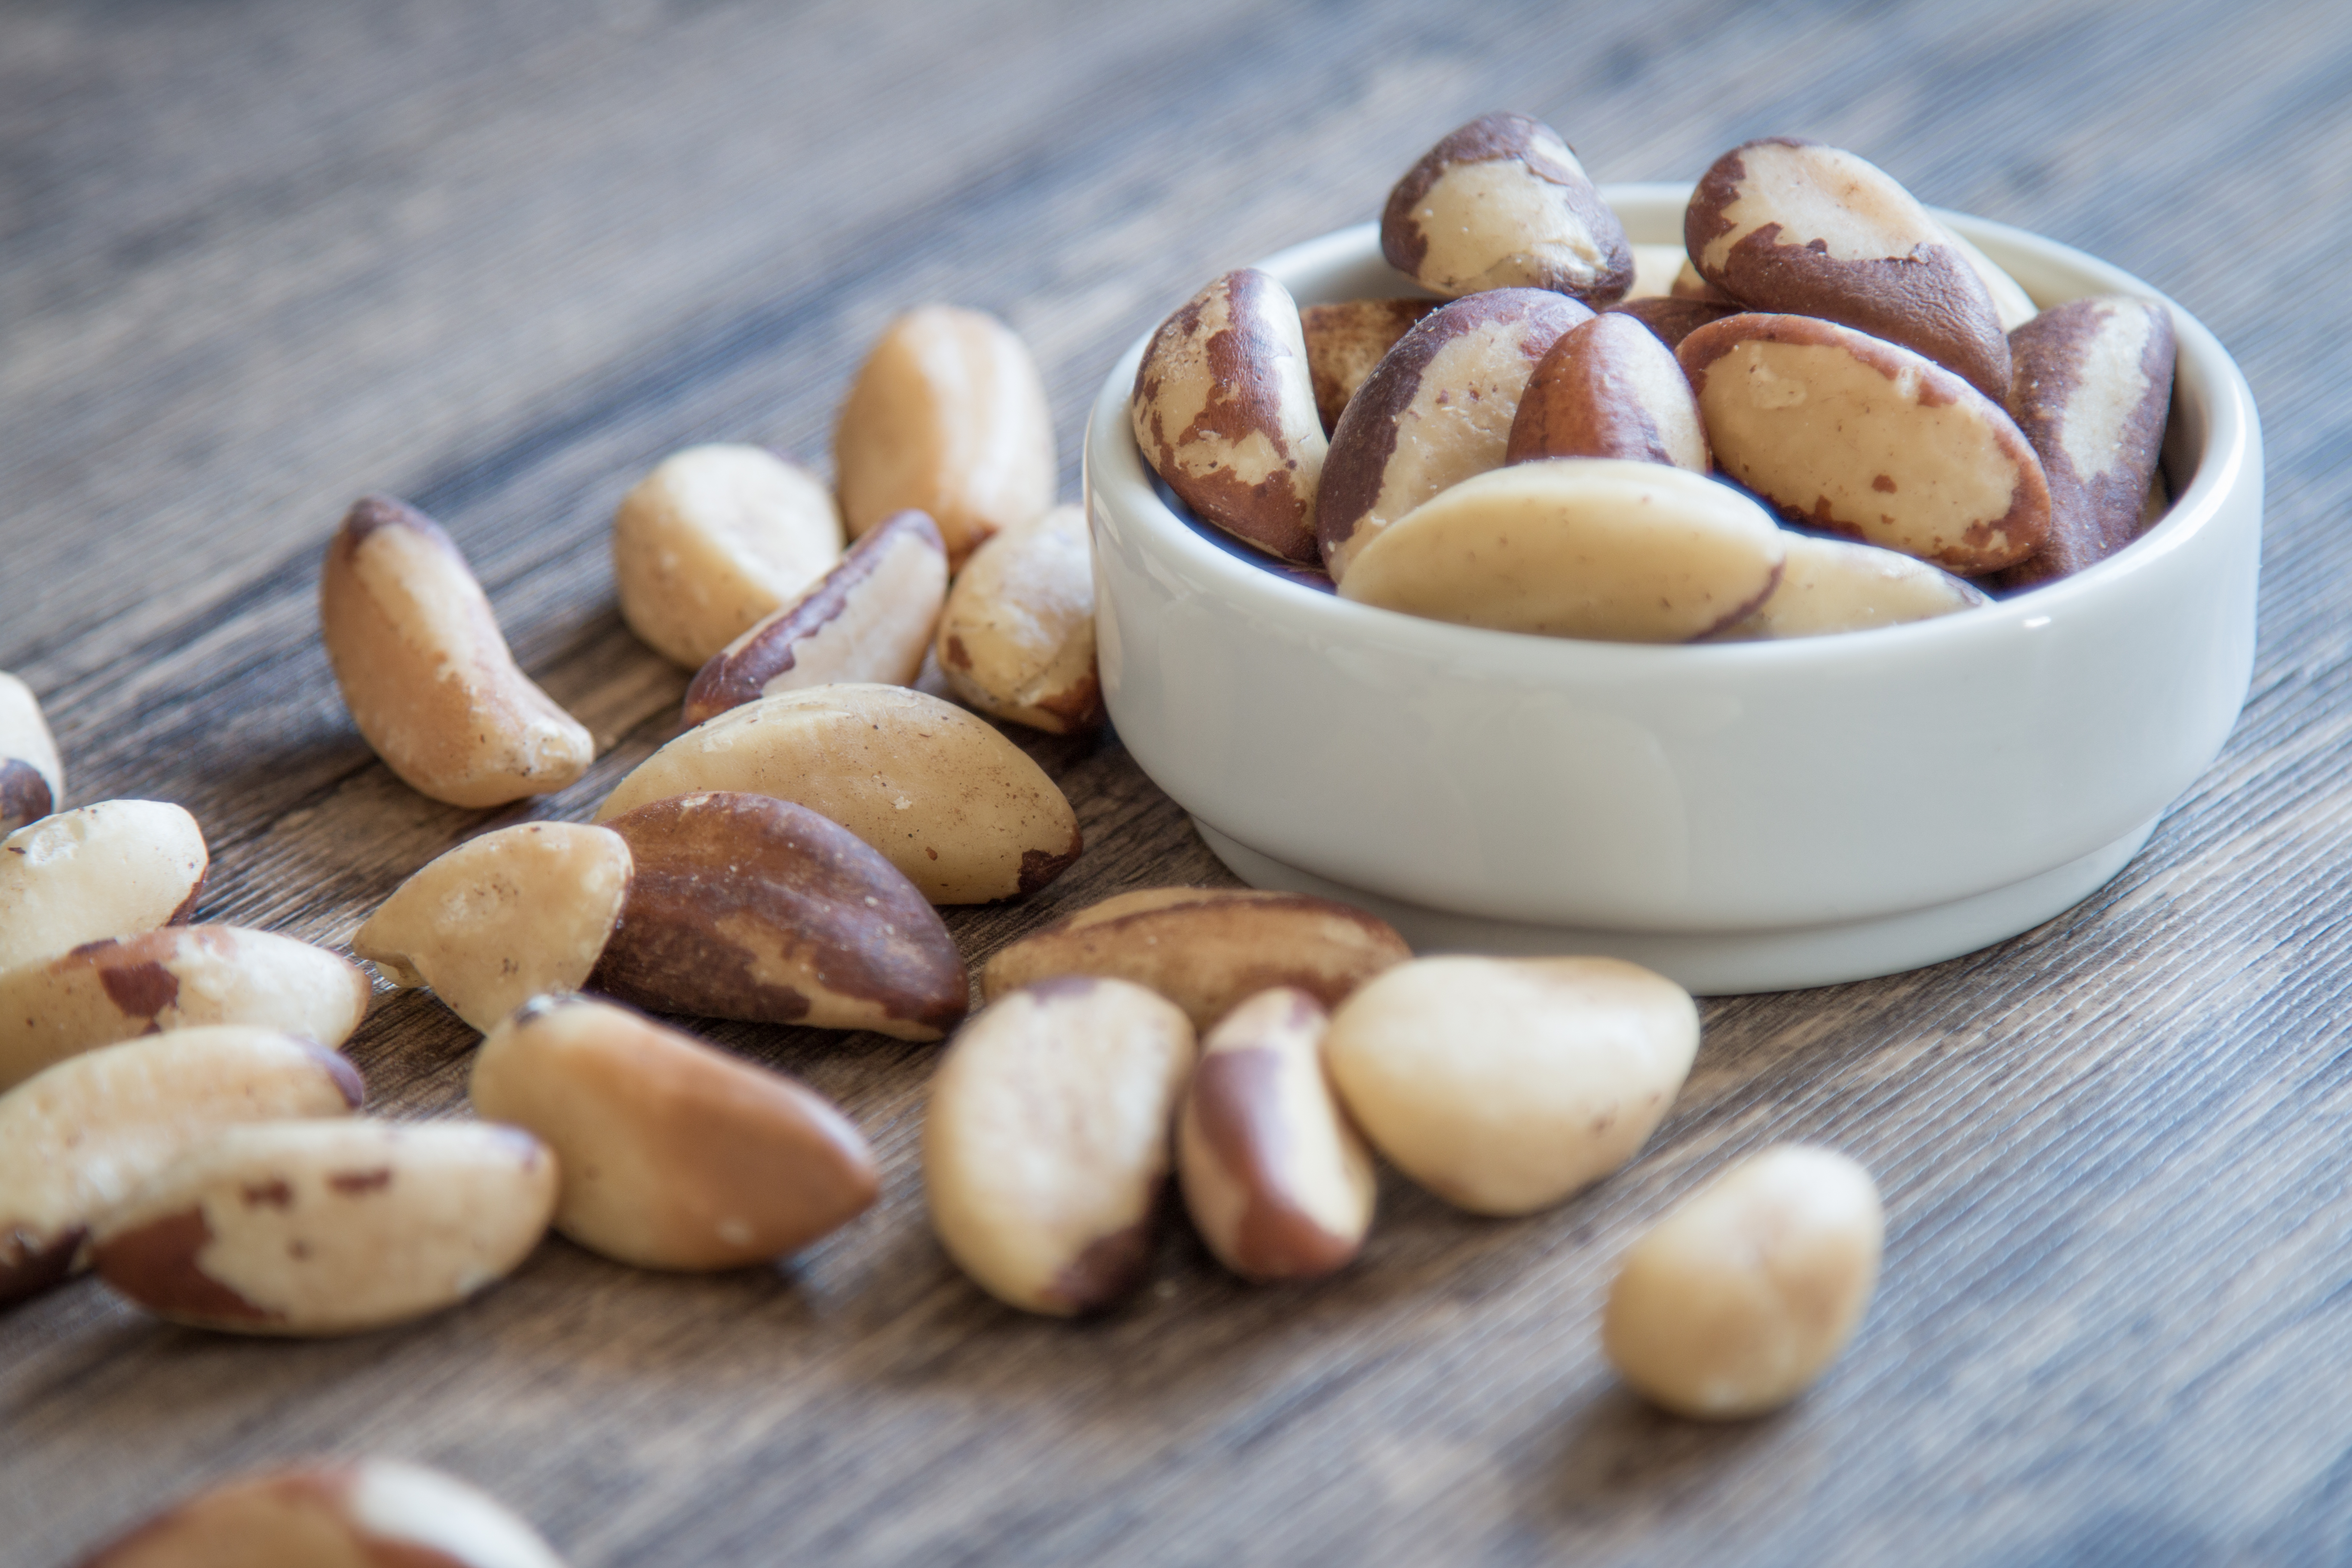 What Nuts or Seeds Are Good for Blood Type B? | Healthy Eating | SF Gate